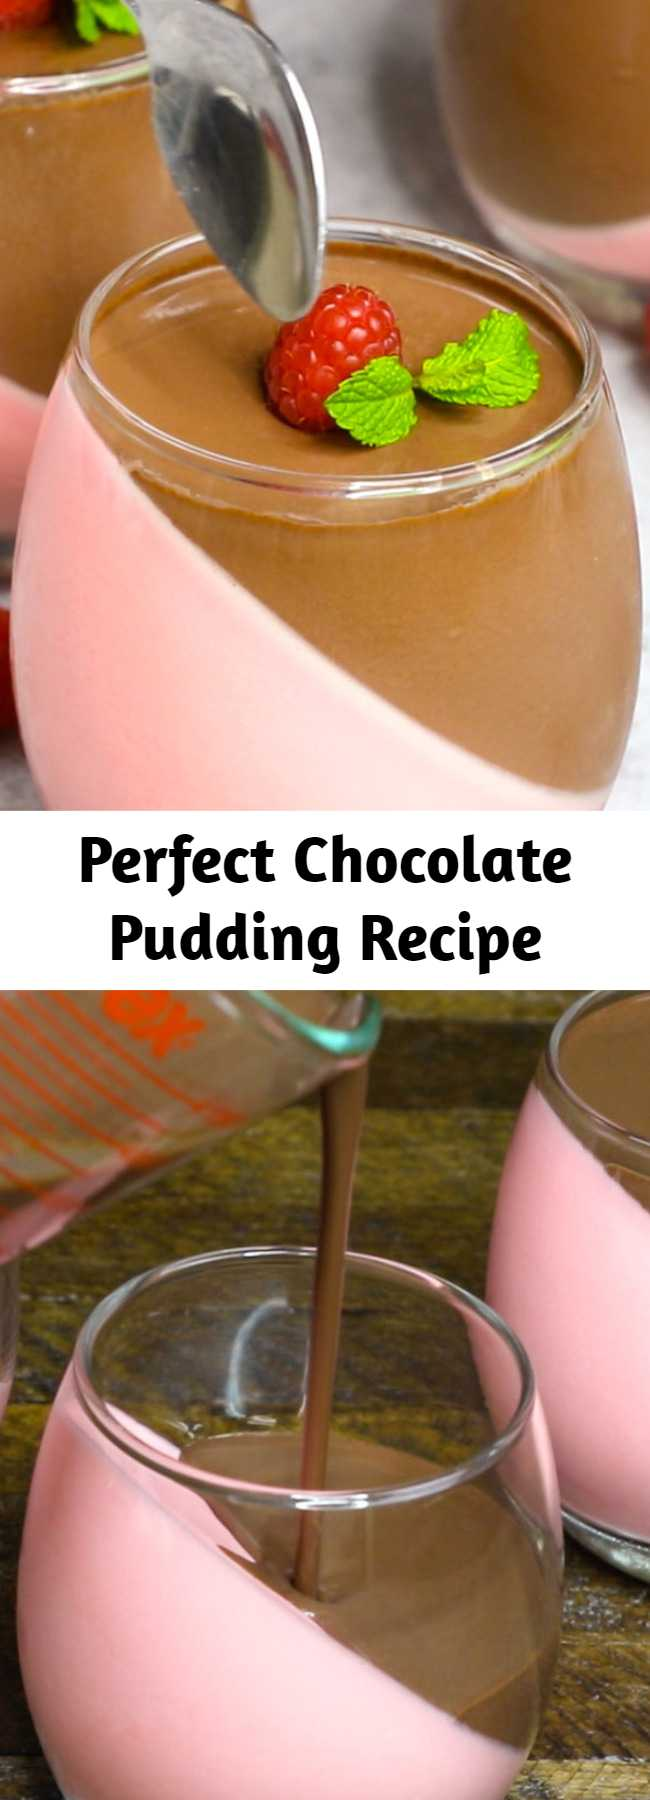 Perfect Chocolate Pudding Recipe - This Homemade Chocolate Pudding is a stunning make-ahead mouthwatering dessert that's creamy and smooth. It's an easy recipe with a few simple ingredients: raspberry jello powder, cool whip, half and half milk, gelatin, unsweet chocolate and sugar.